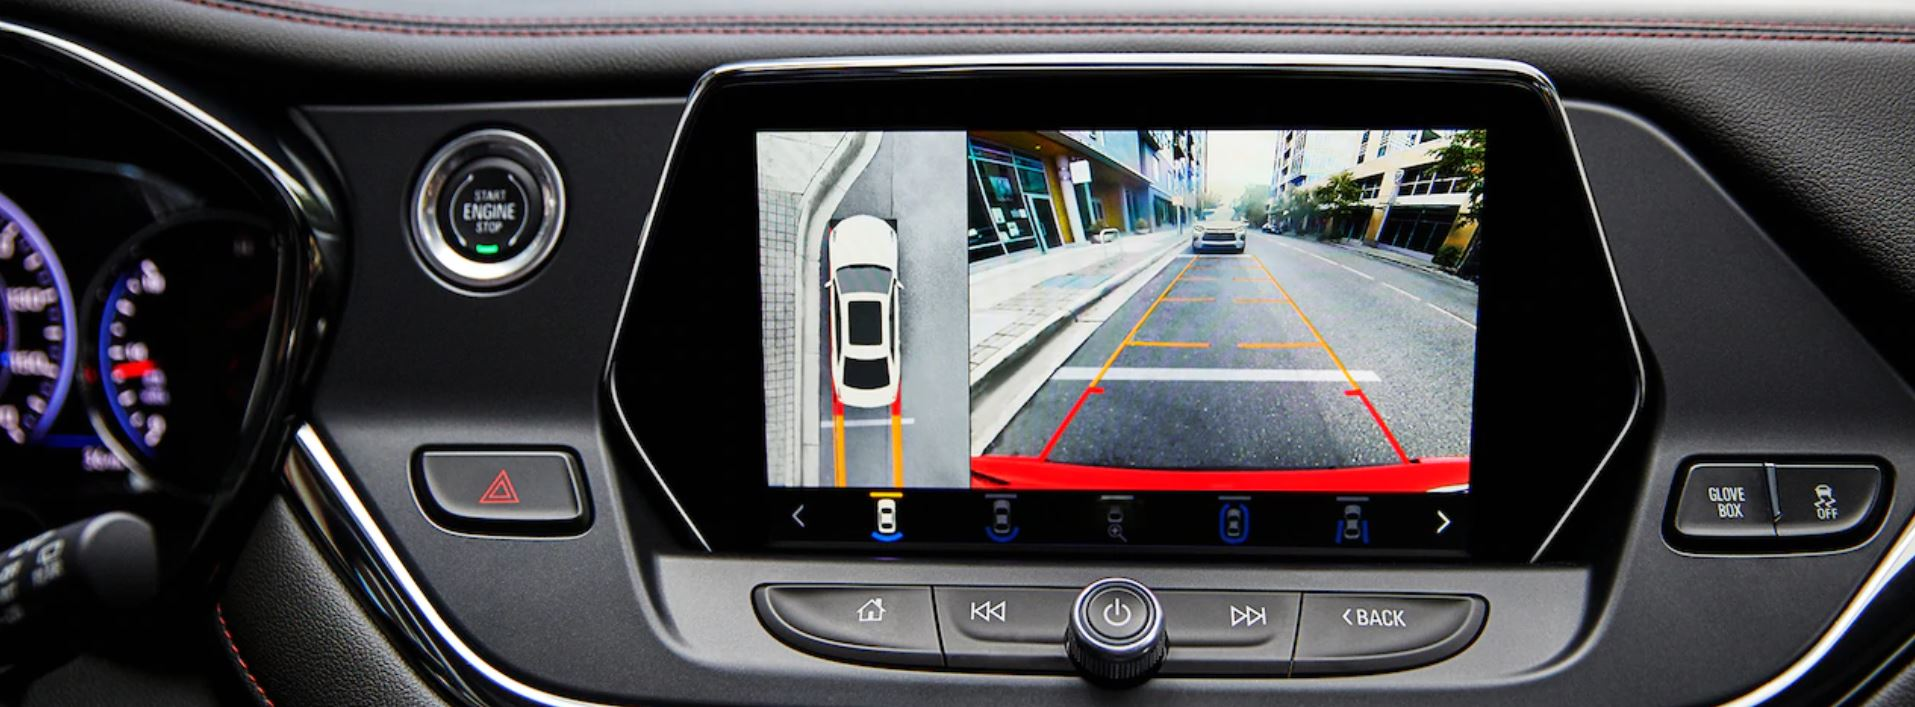 2019 Chevrolet Blazer Rearview Camera